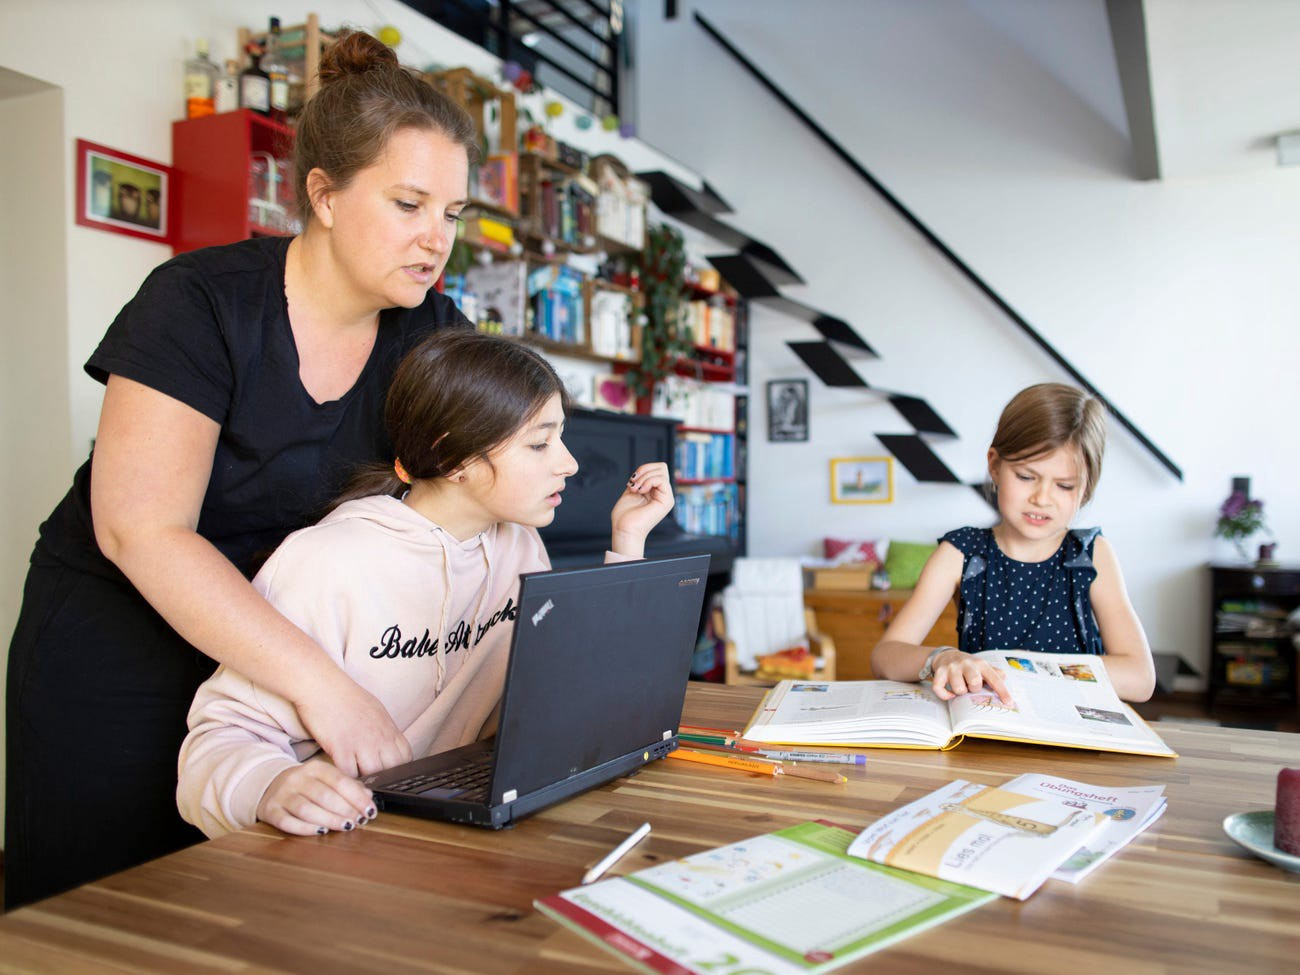 A mother with two children helps doing schoolwork on April 15, 2020.